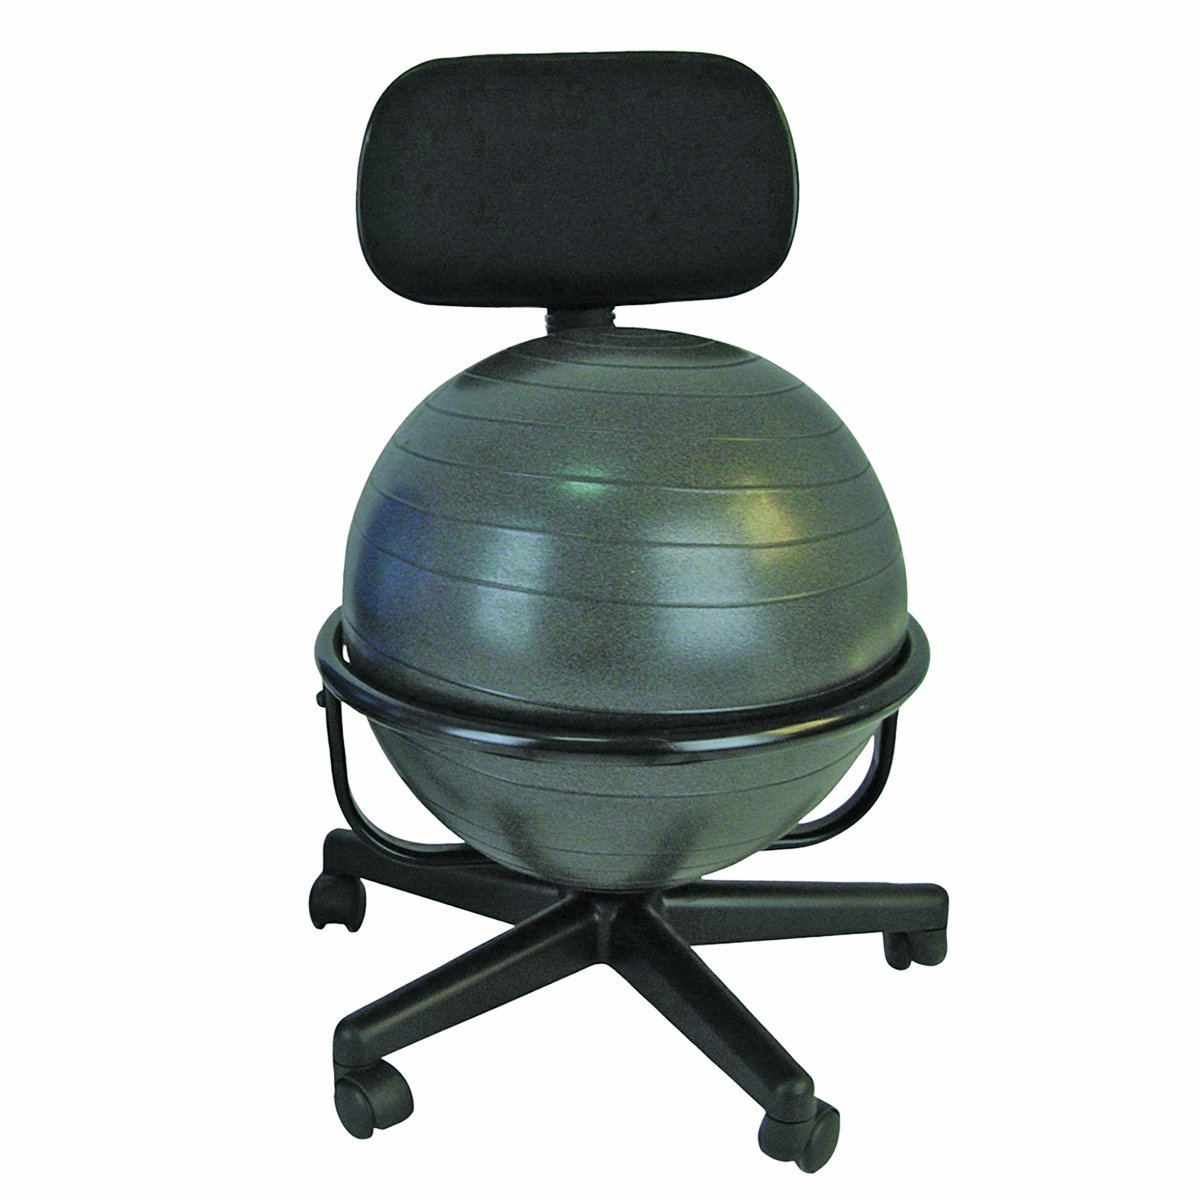 Ergonomic ball office chairs - Amazon Com Cando Metal Ball Chair 22 With Arms Industrial Scientific